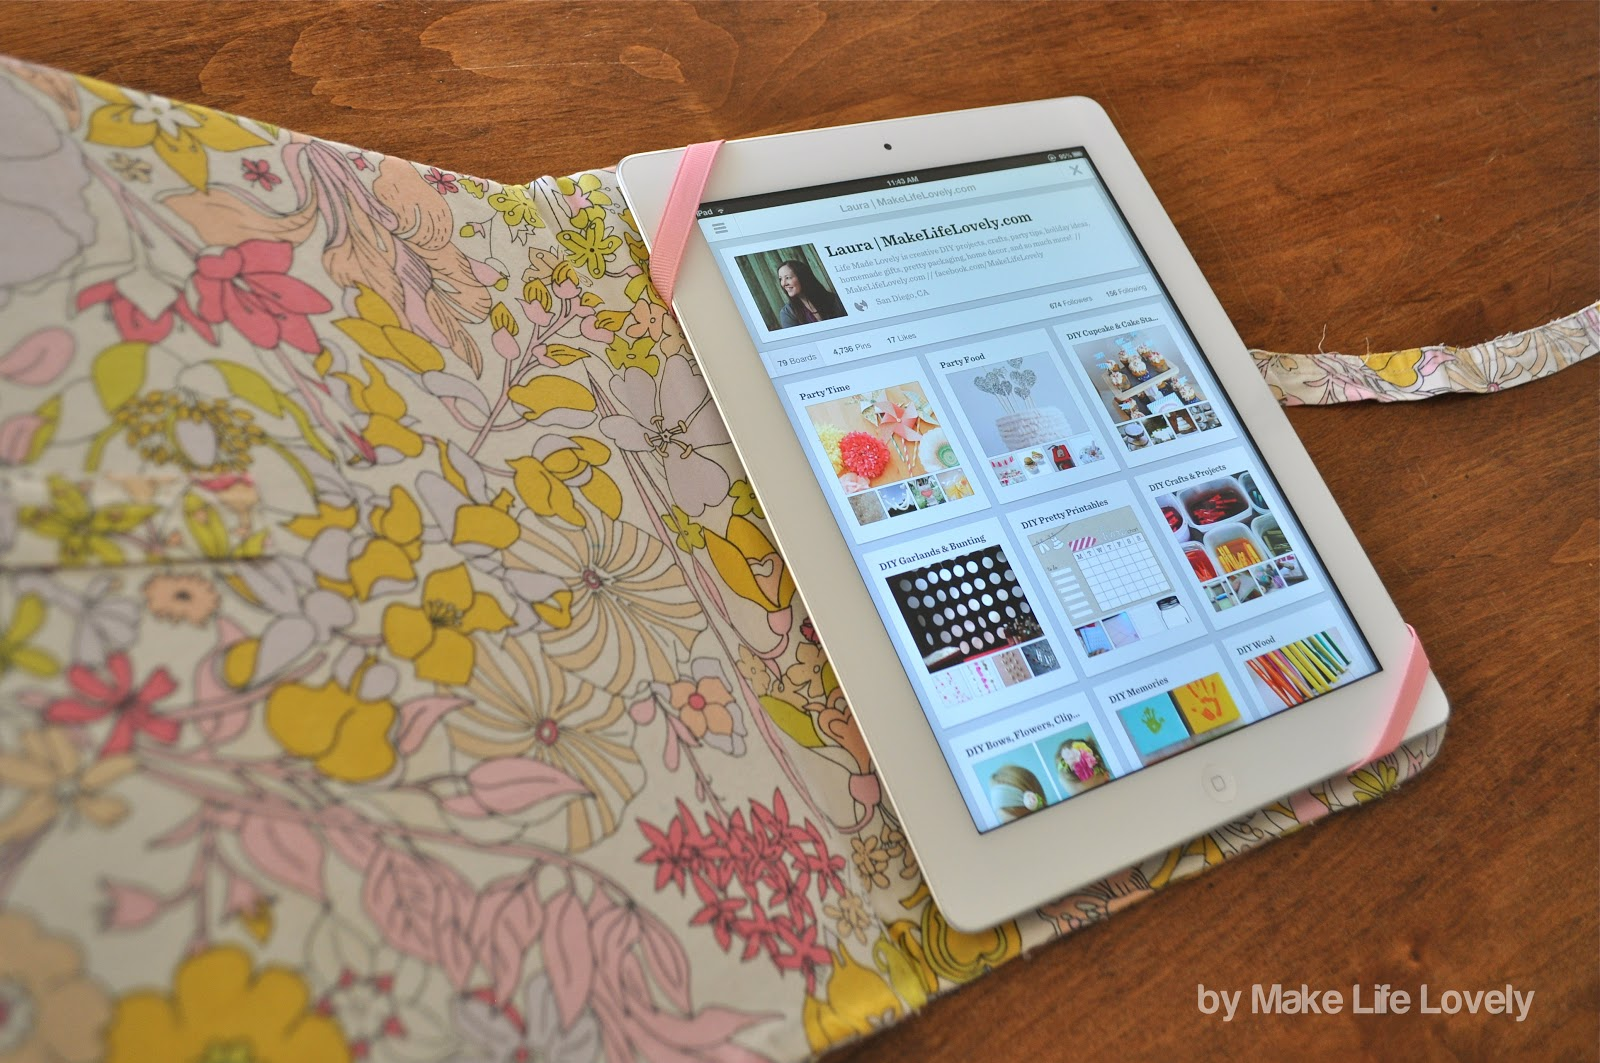 Ipad Book Cover Diy : Diy ipad case tutorial made for free using recycled